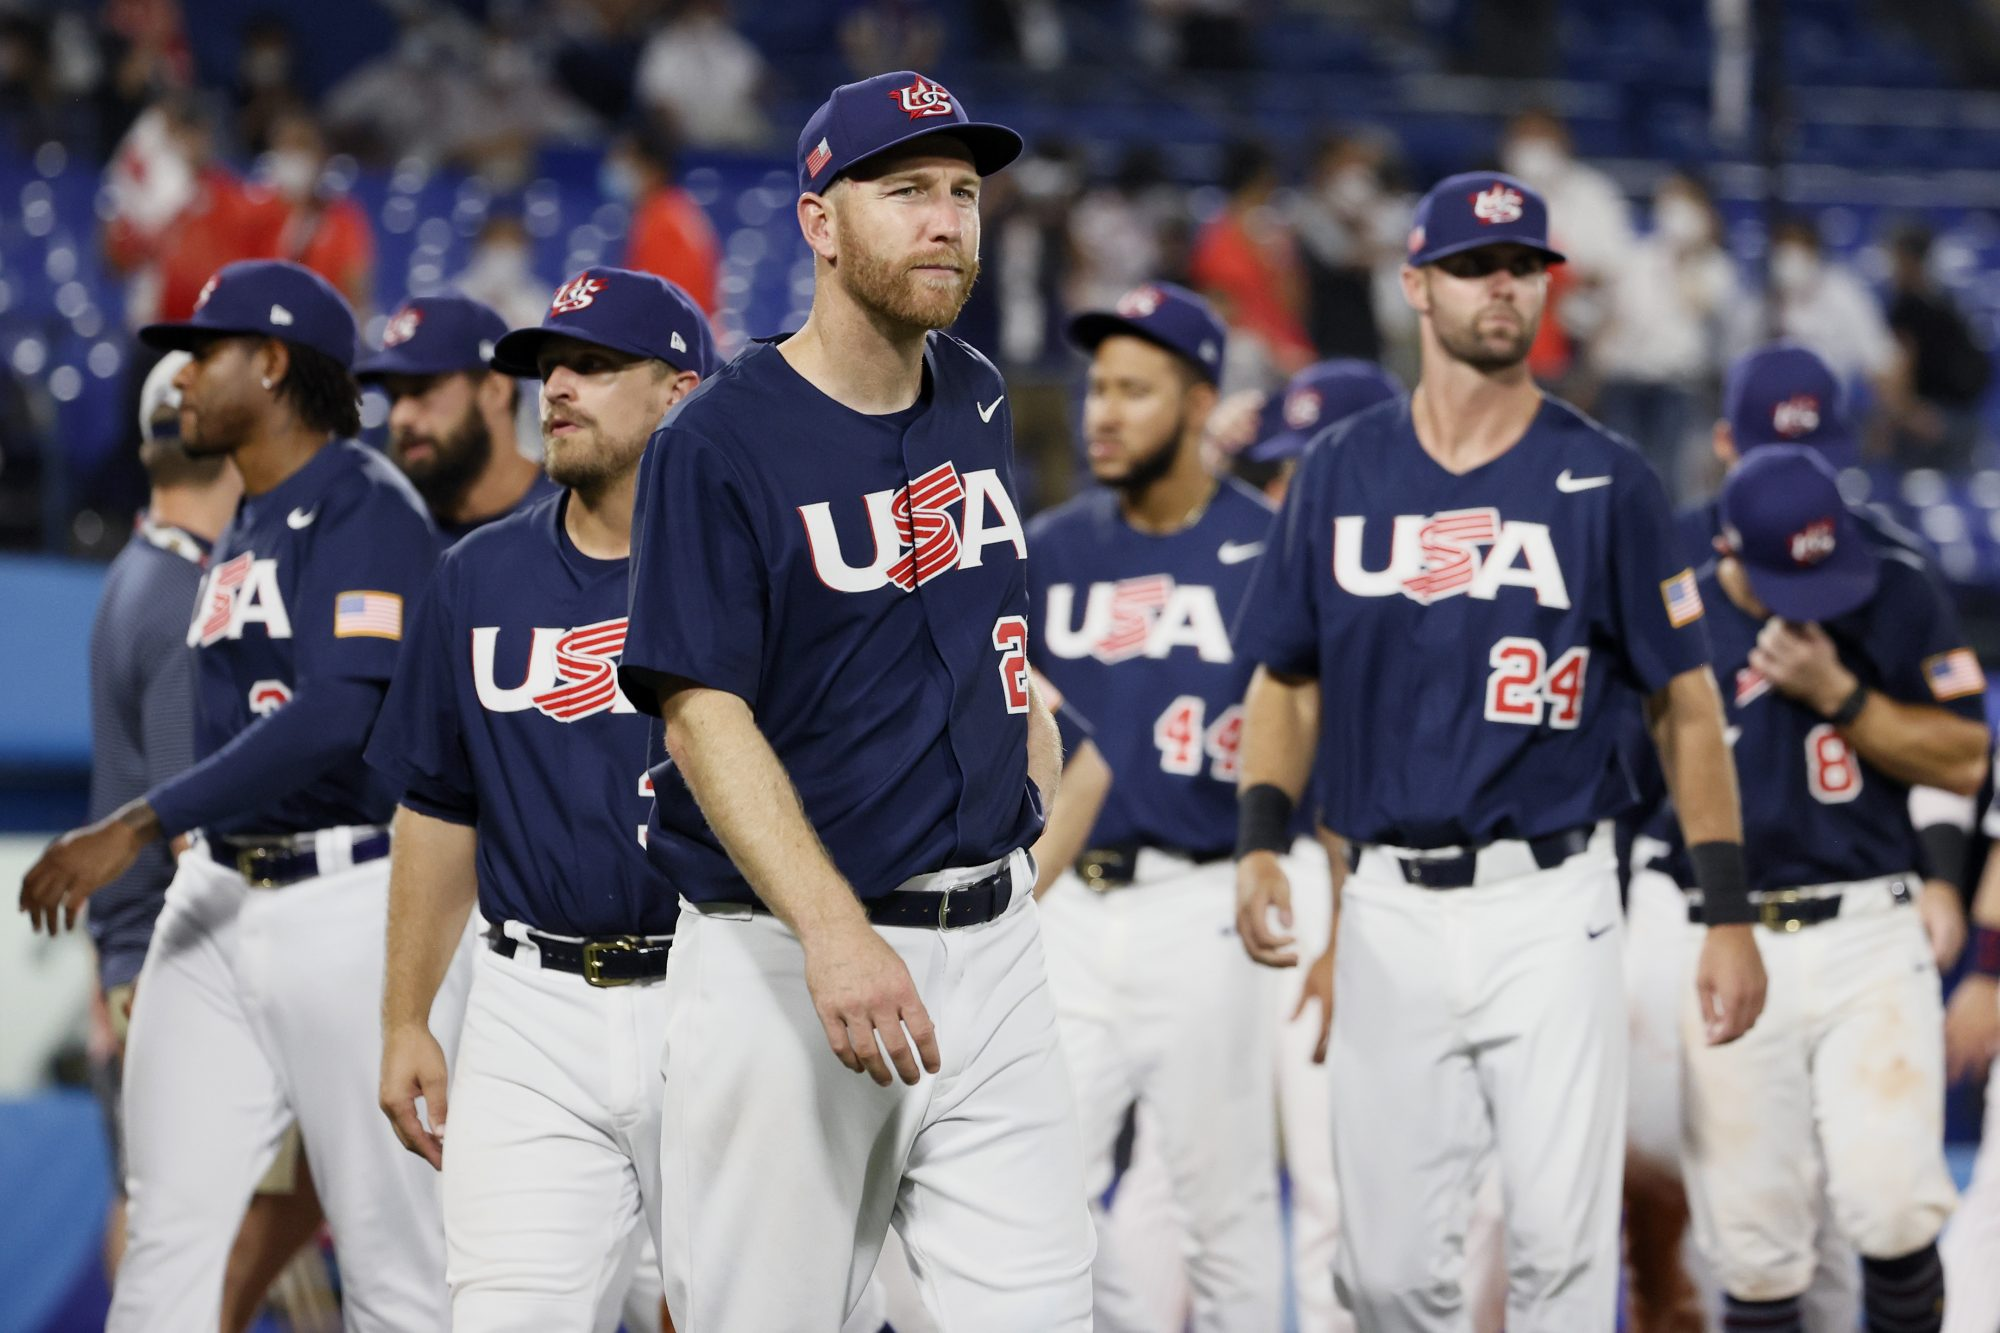 US baseball loses heartbreaker to Japan in Olympics final - 247 News Around  The World